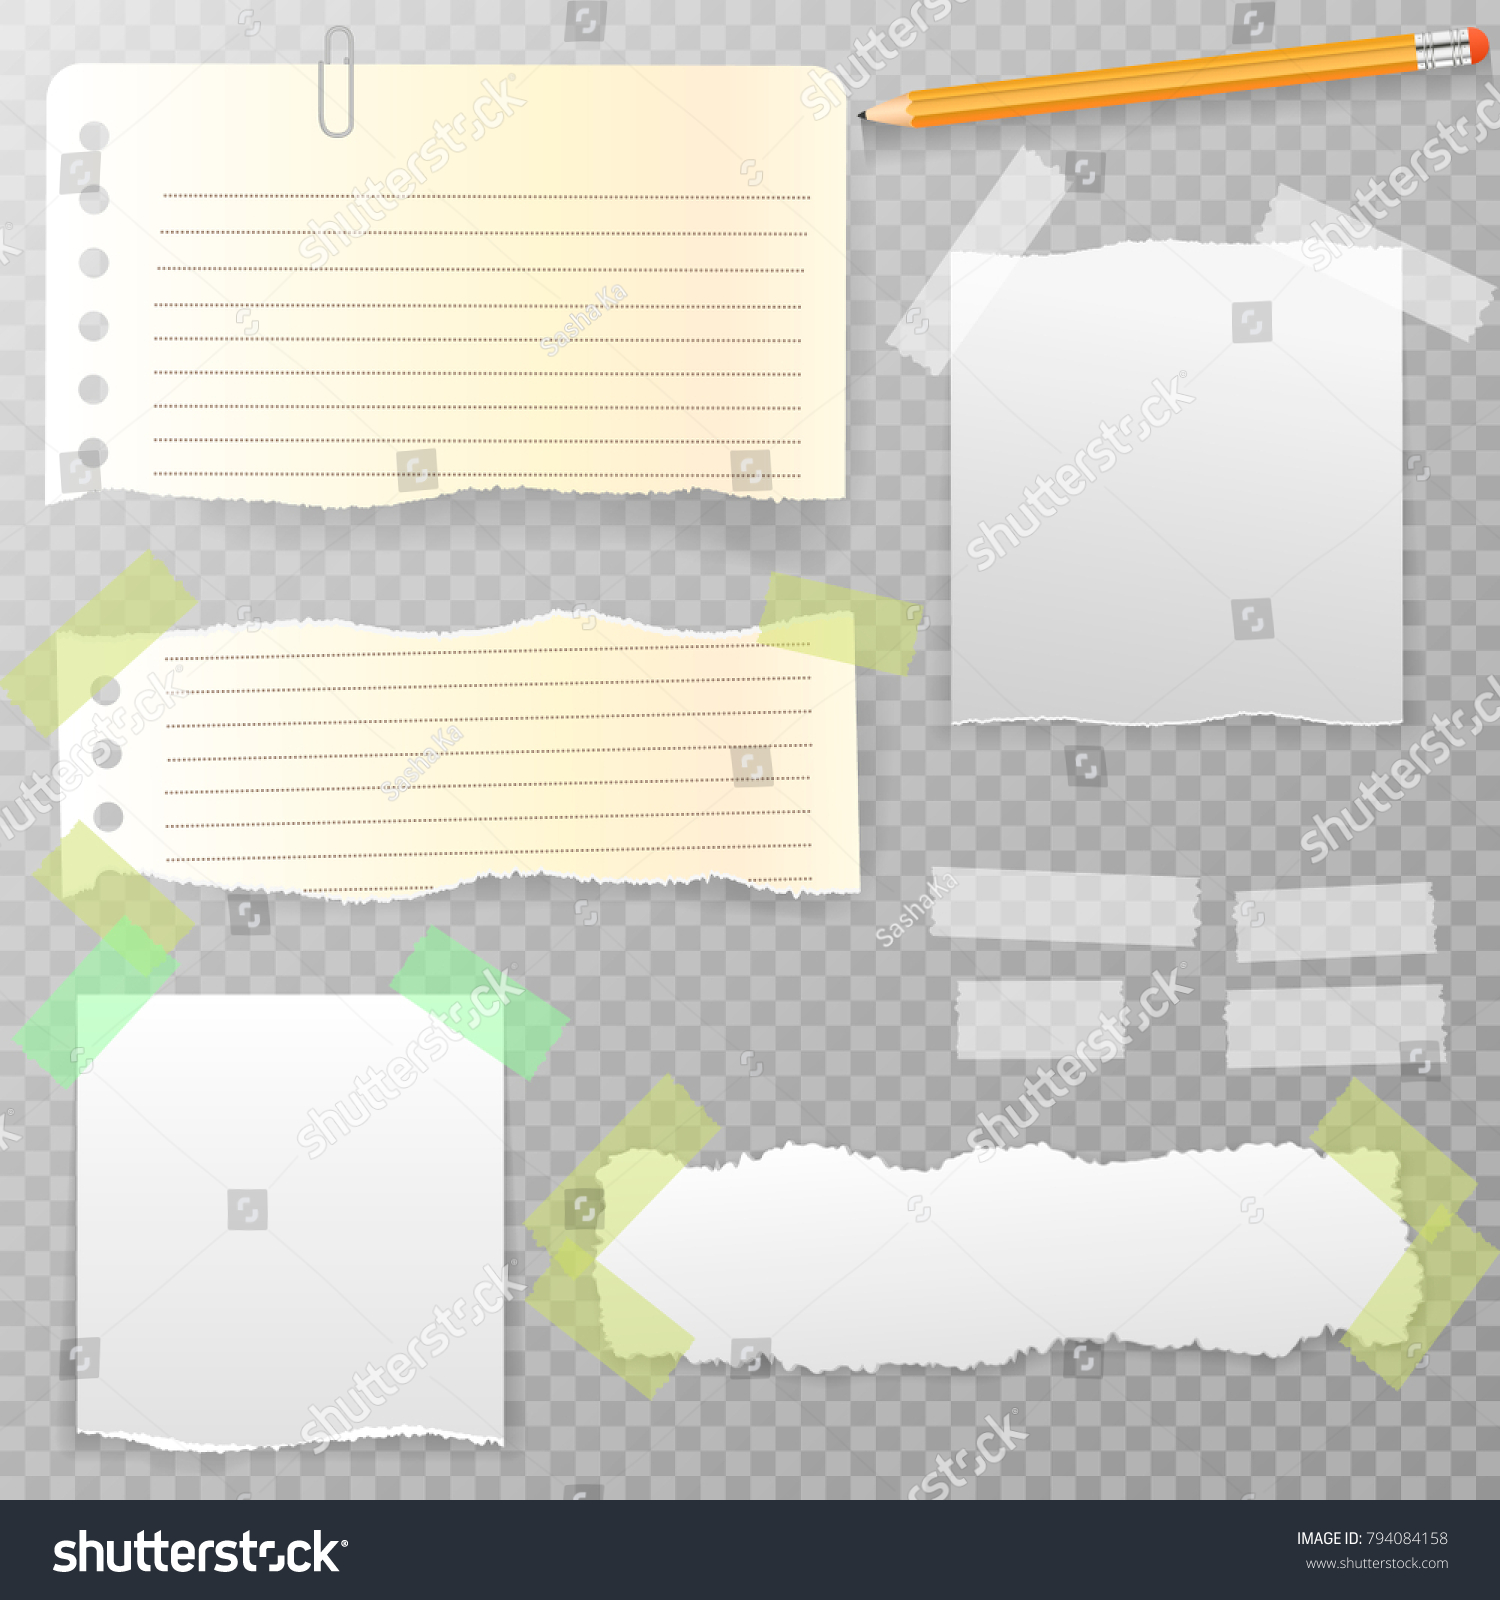 torn horizontal note notebook copybook paper stock vector (royalty